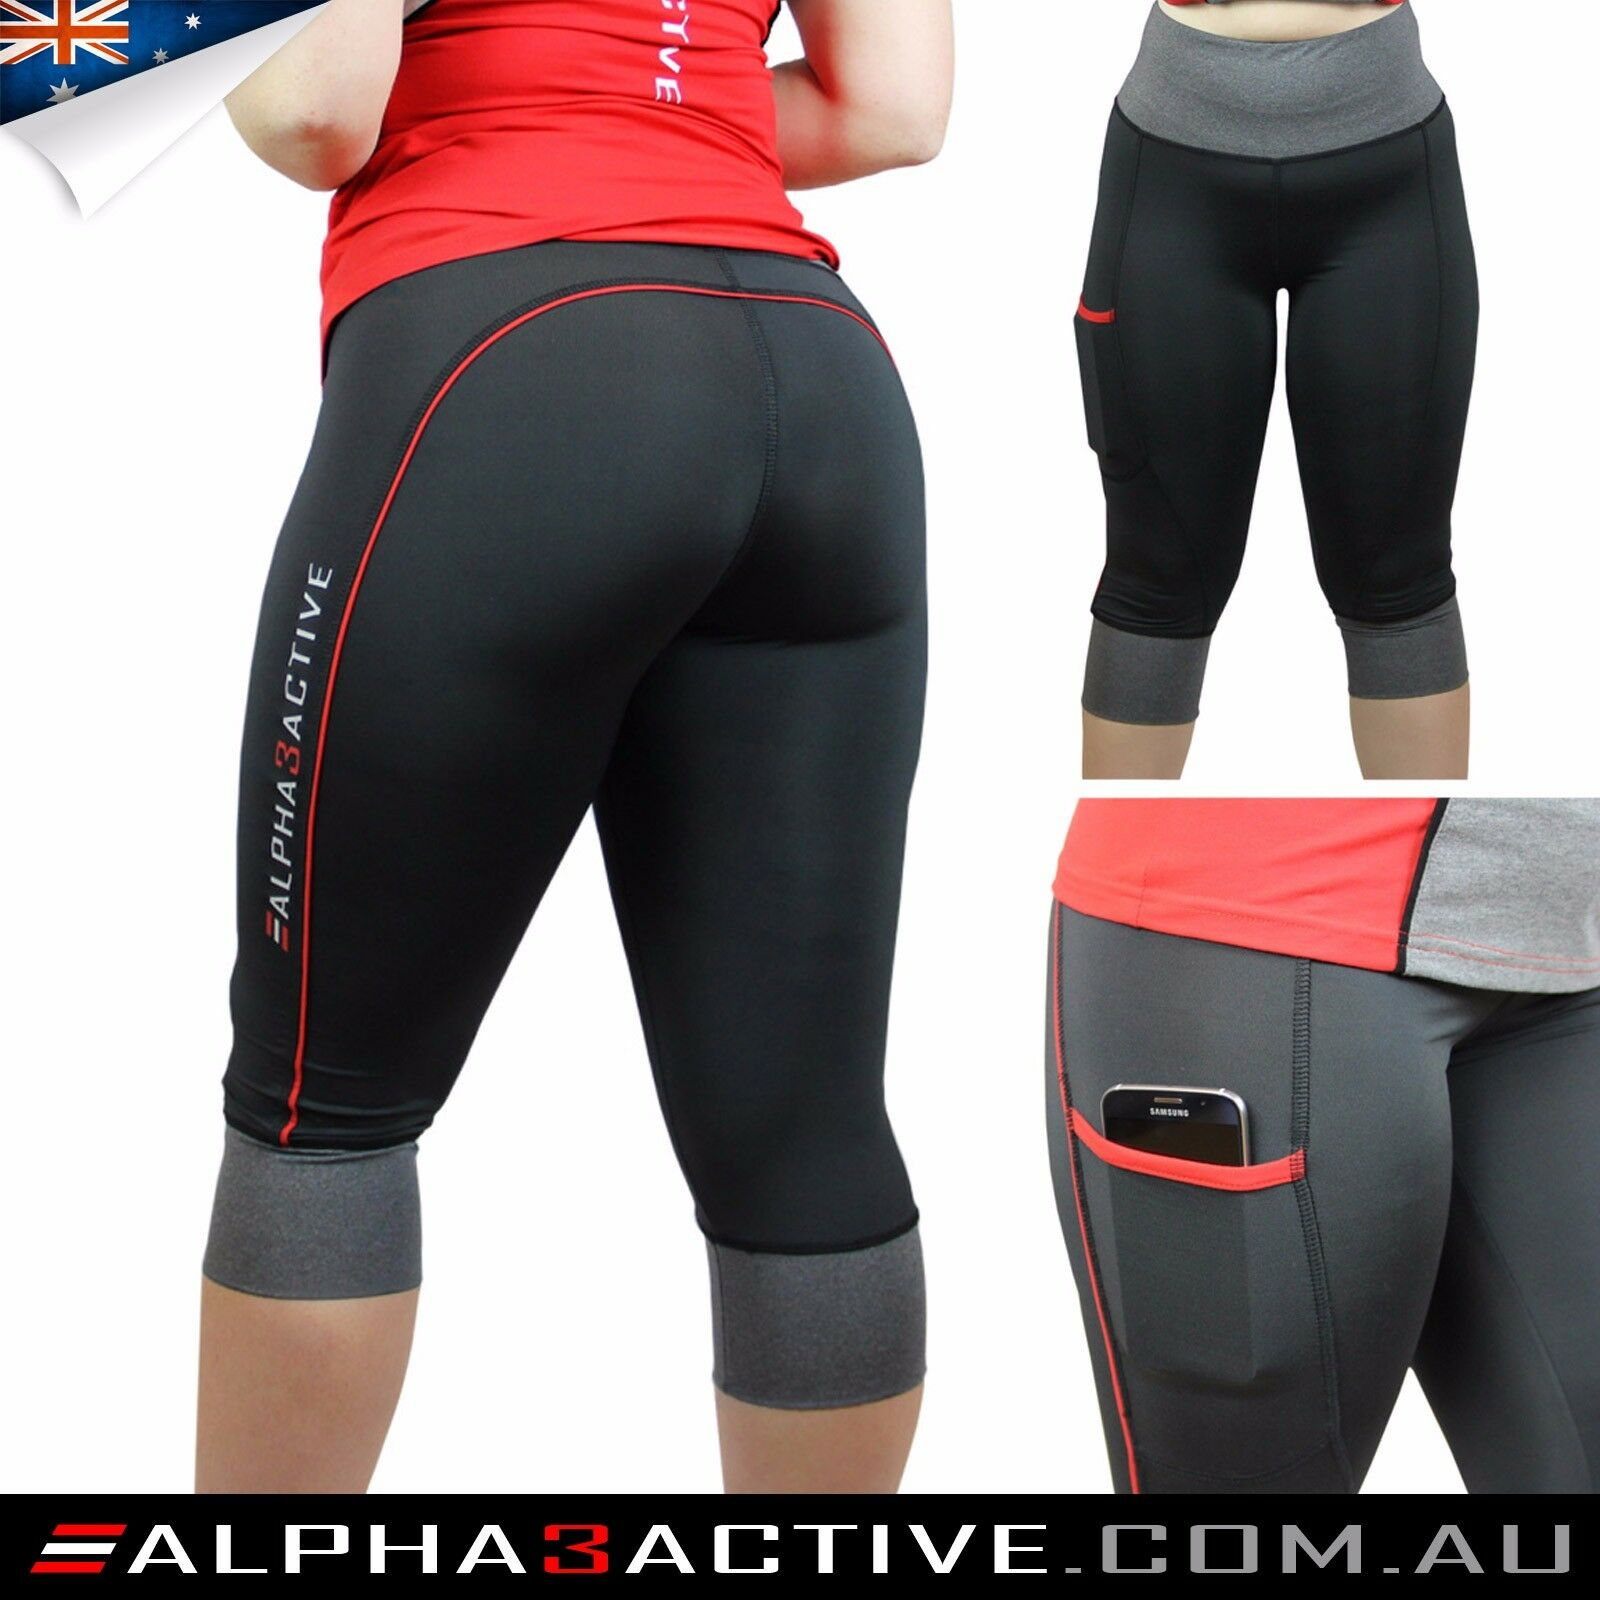 [Aussie Brand] Alpha3Active Redline High Waisted Tights Yoga Pants (Sizes 10-20)